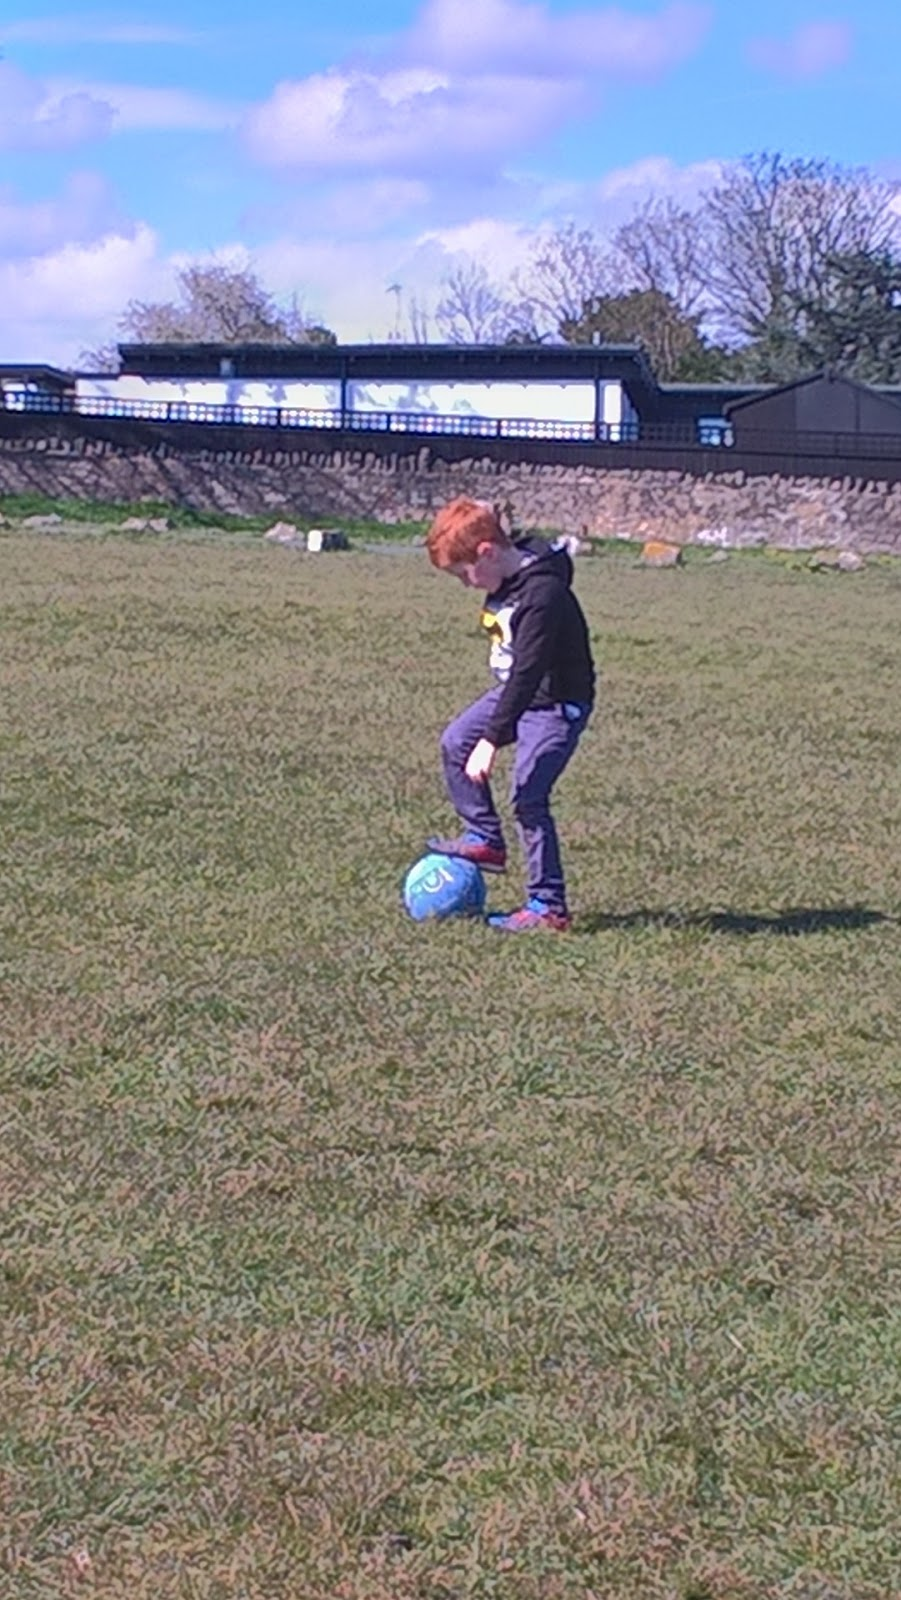 Ieuan Hobbis playing football on Dinas Powis Common